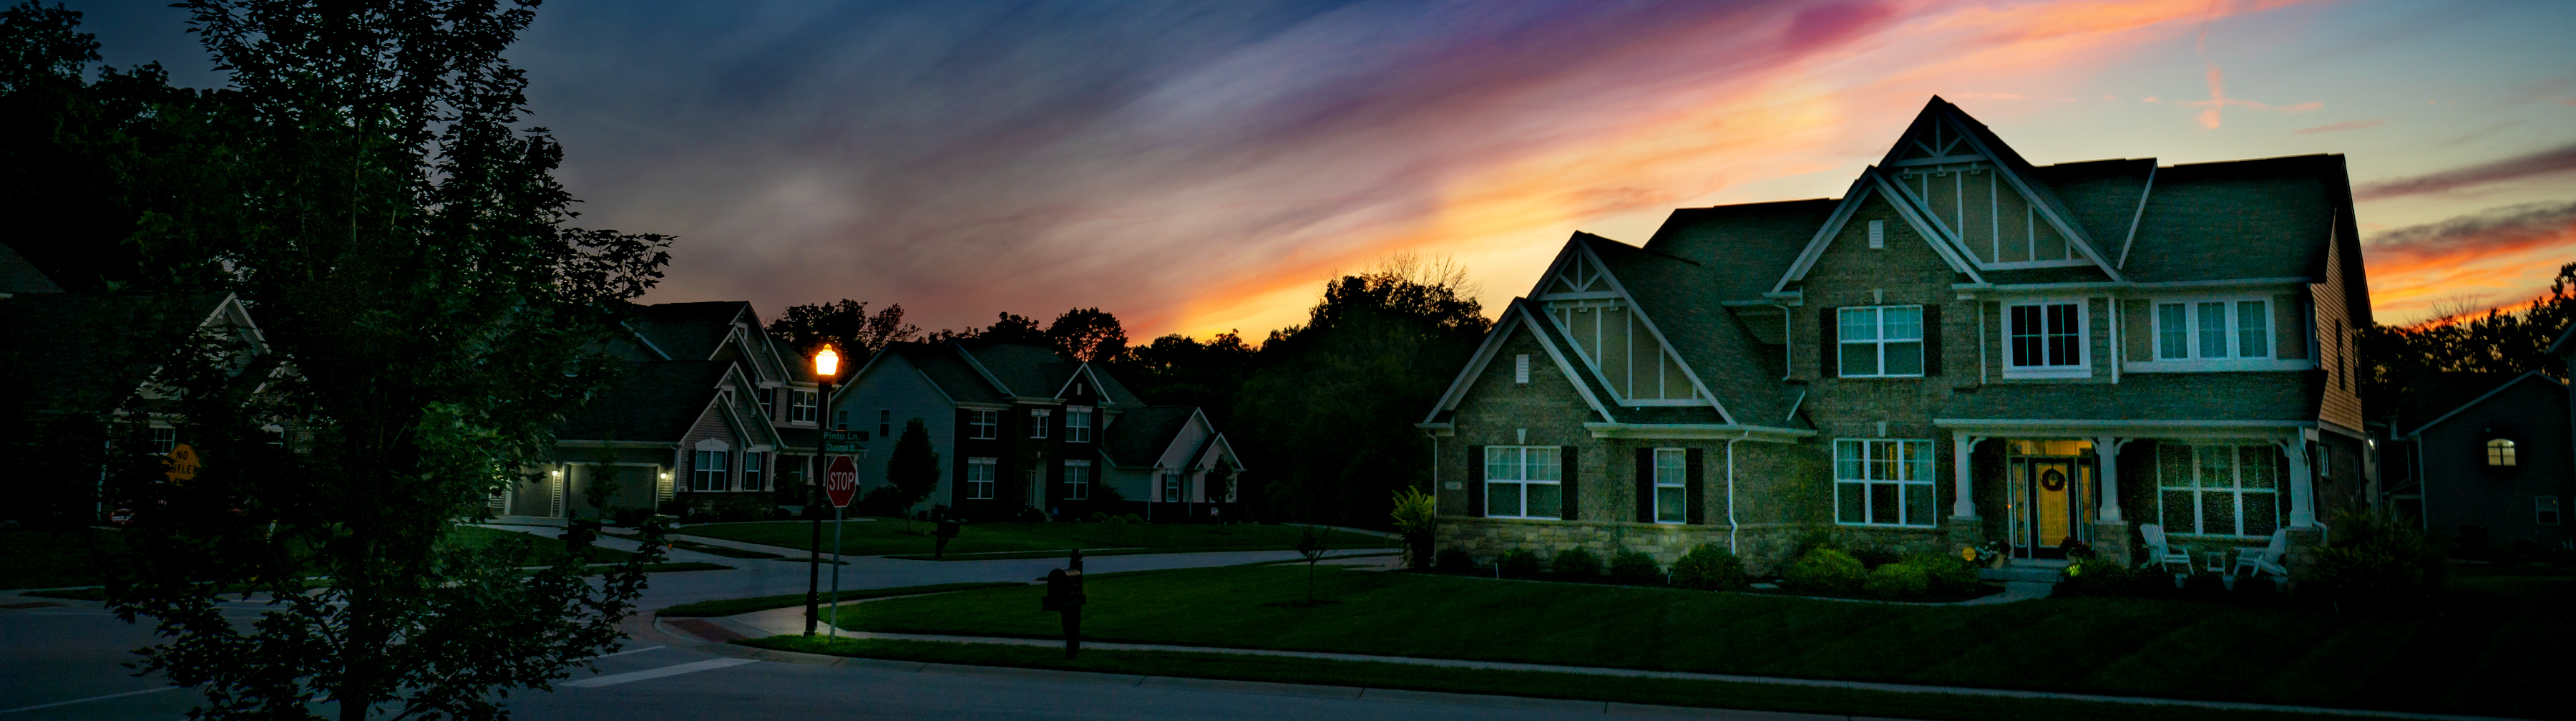 House at Sunset Photo